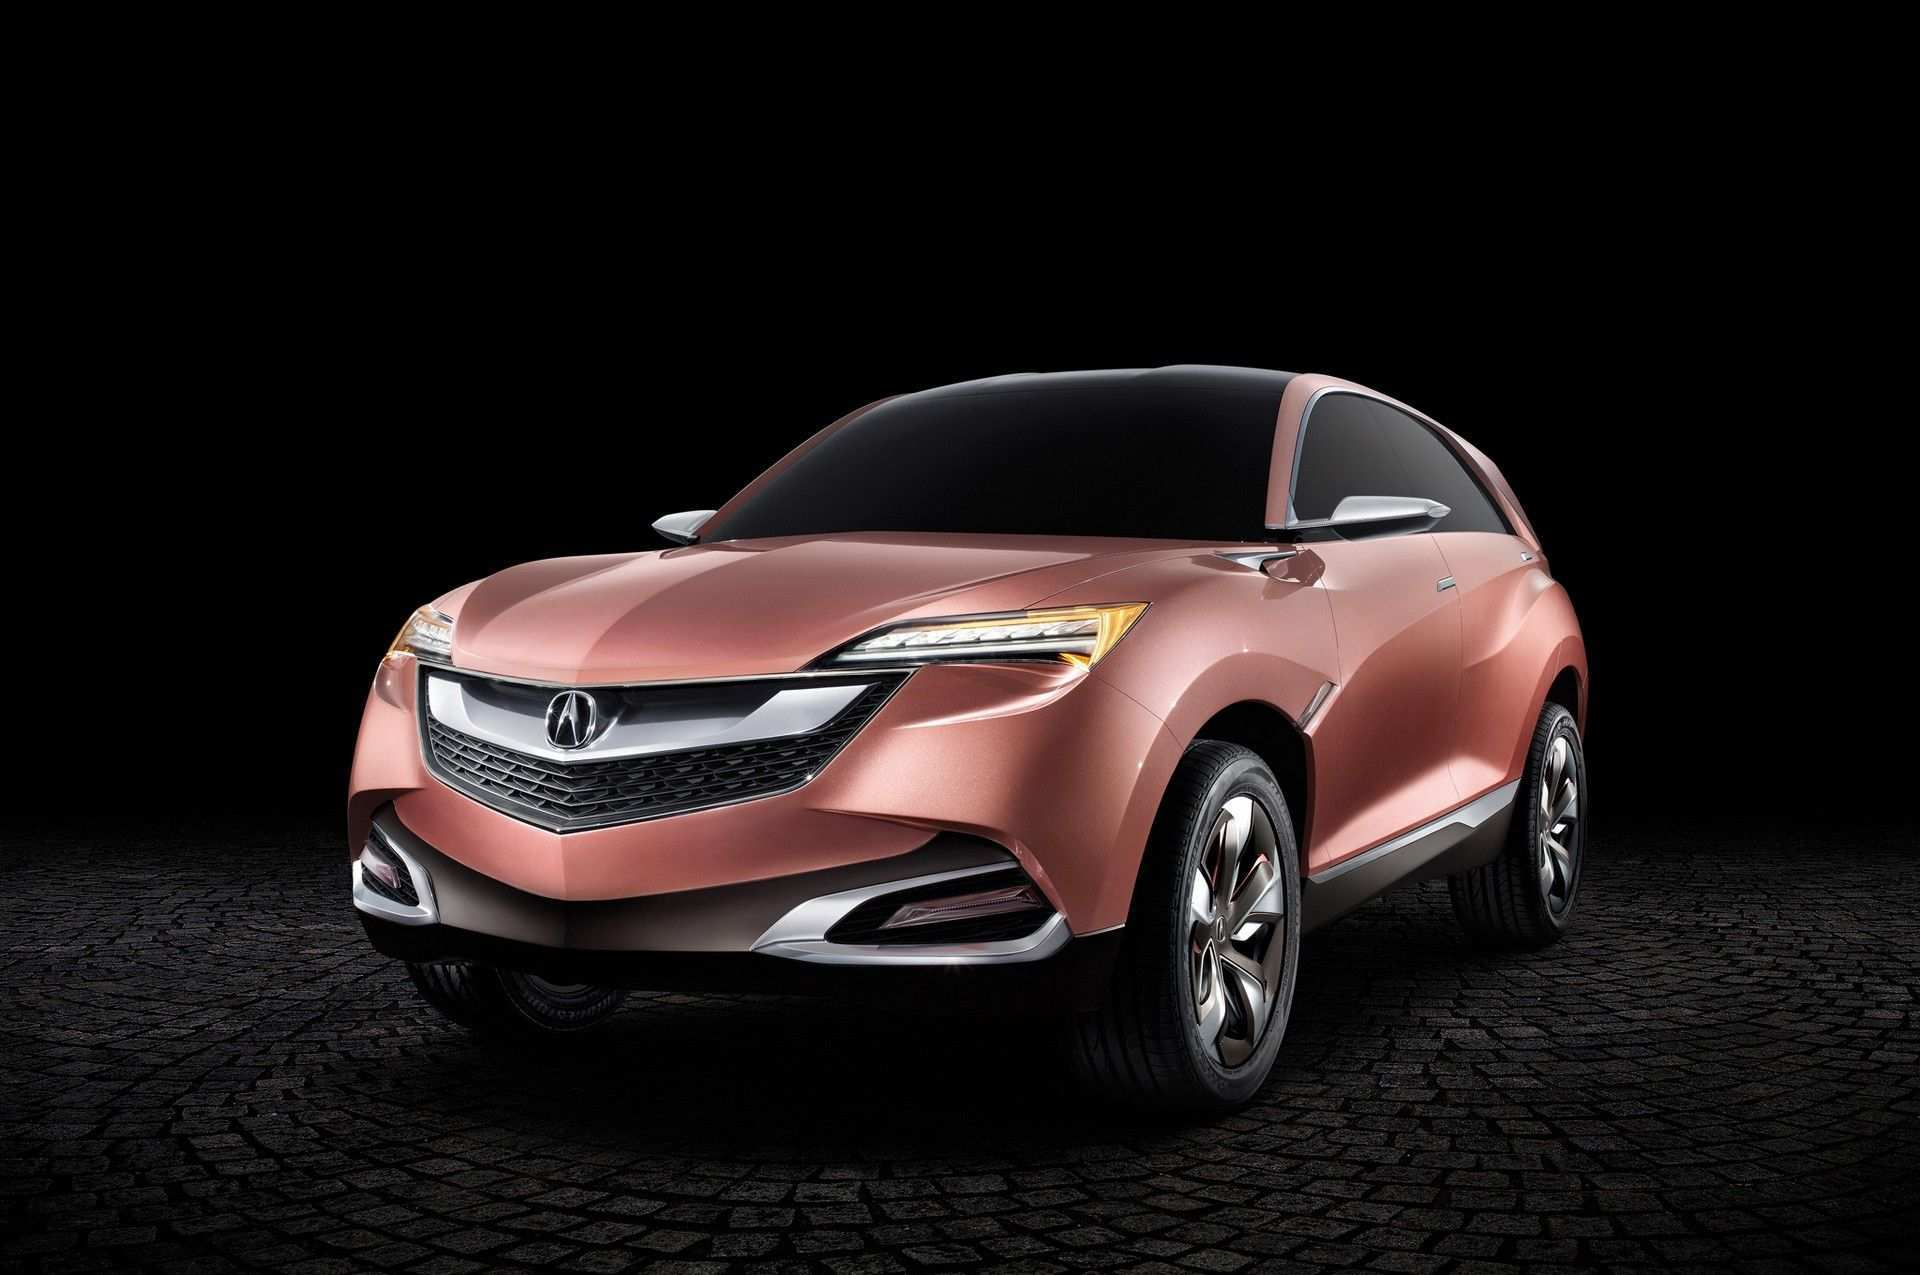 78 New Acura Rdx 2020 Review Spesification for Acura Rdx 2020 Review